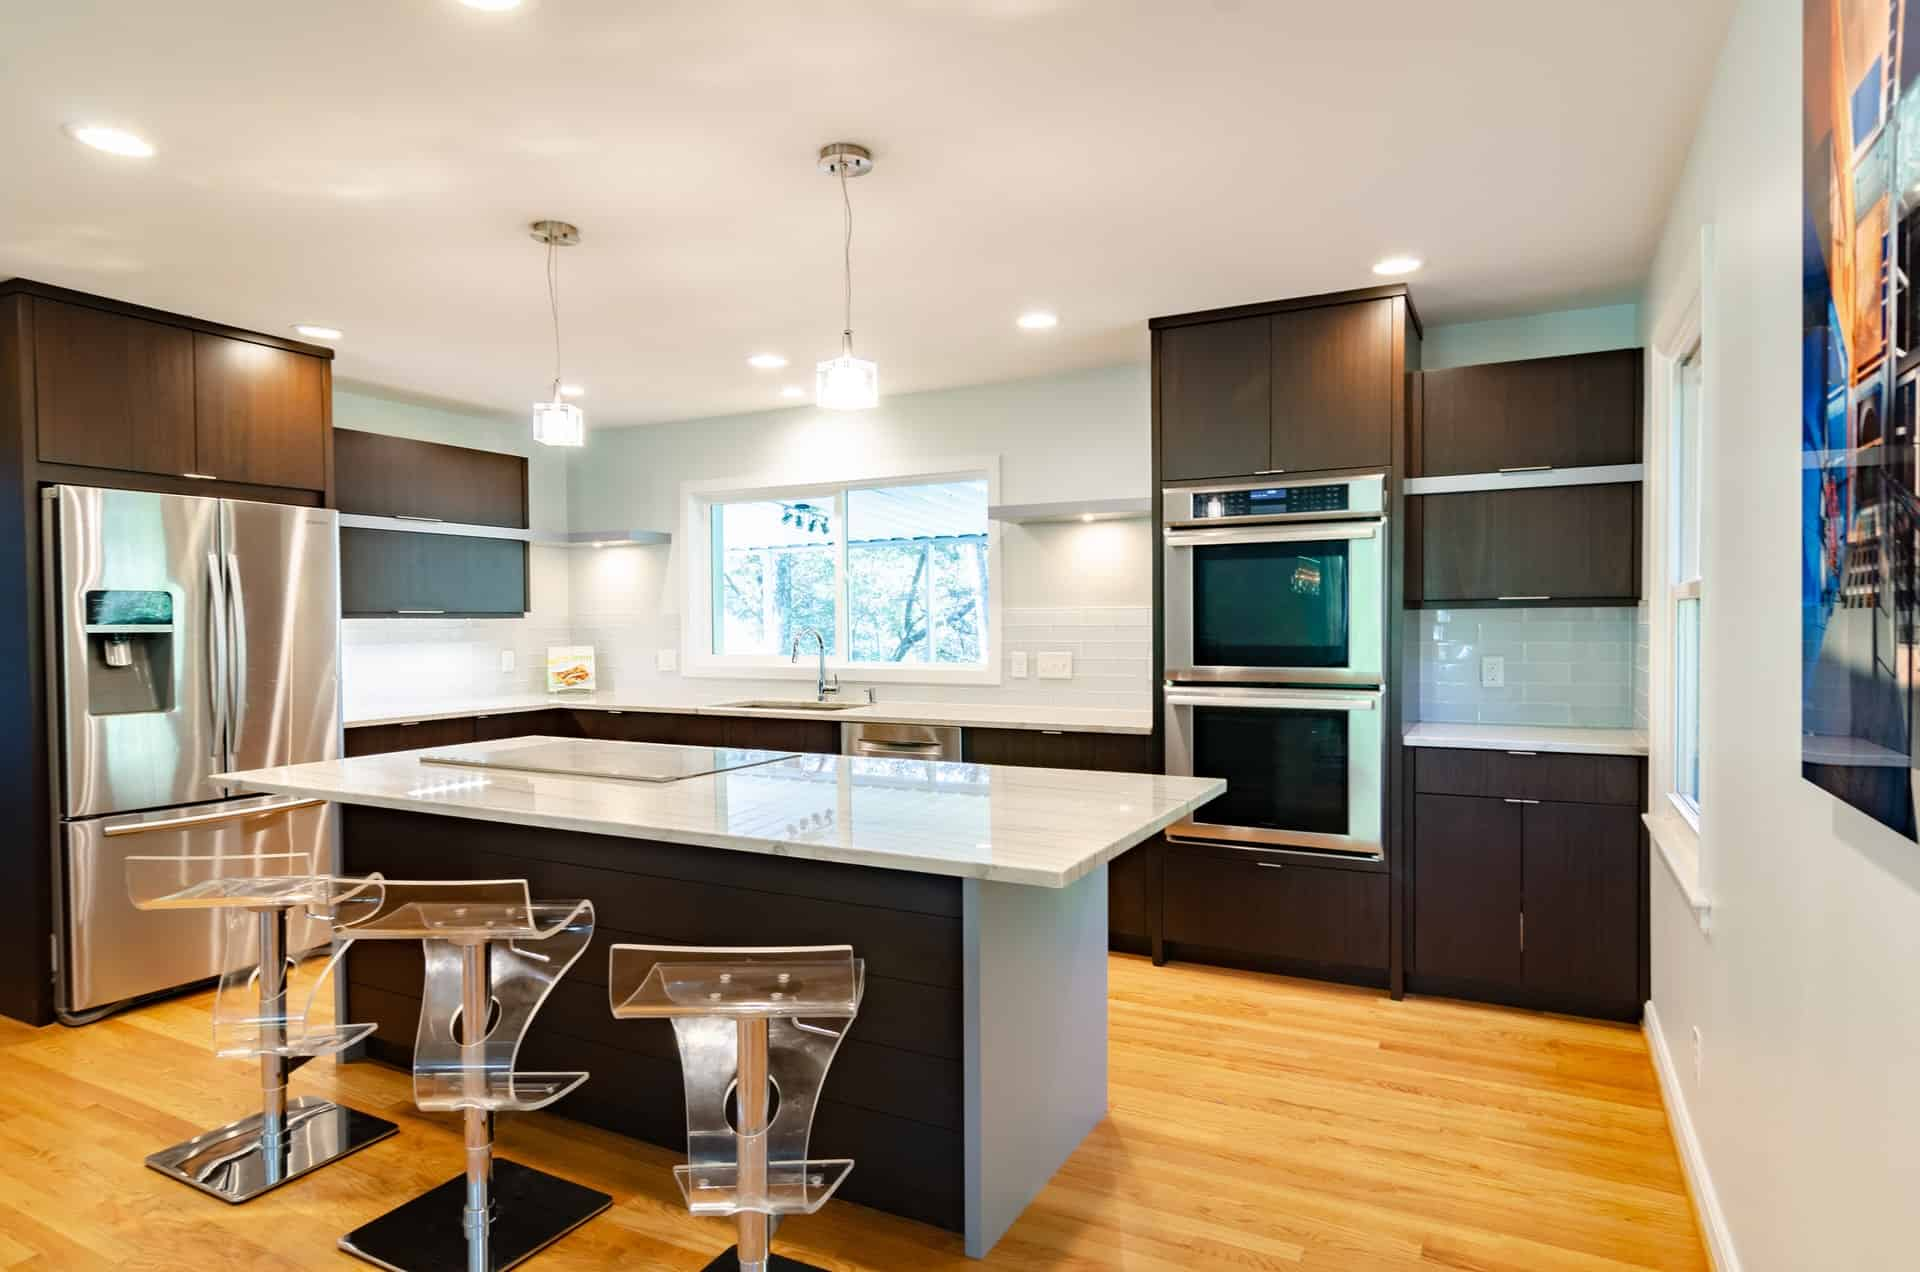 A Modern Kitchen in a 60s Ranch Style Home modern kitchen ideas